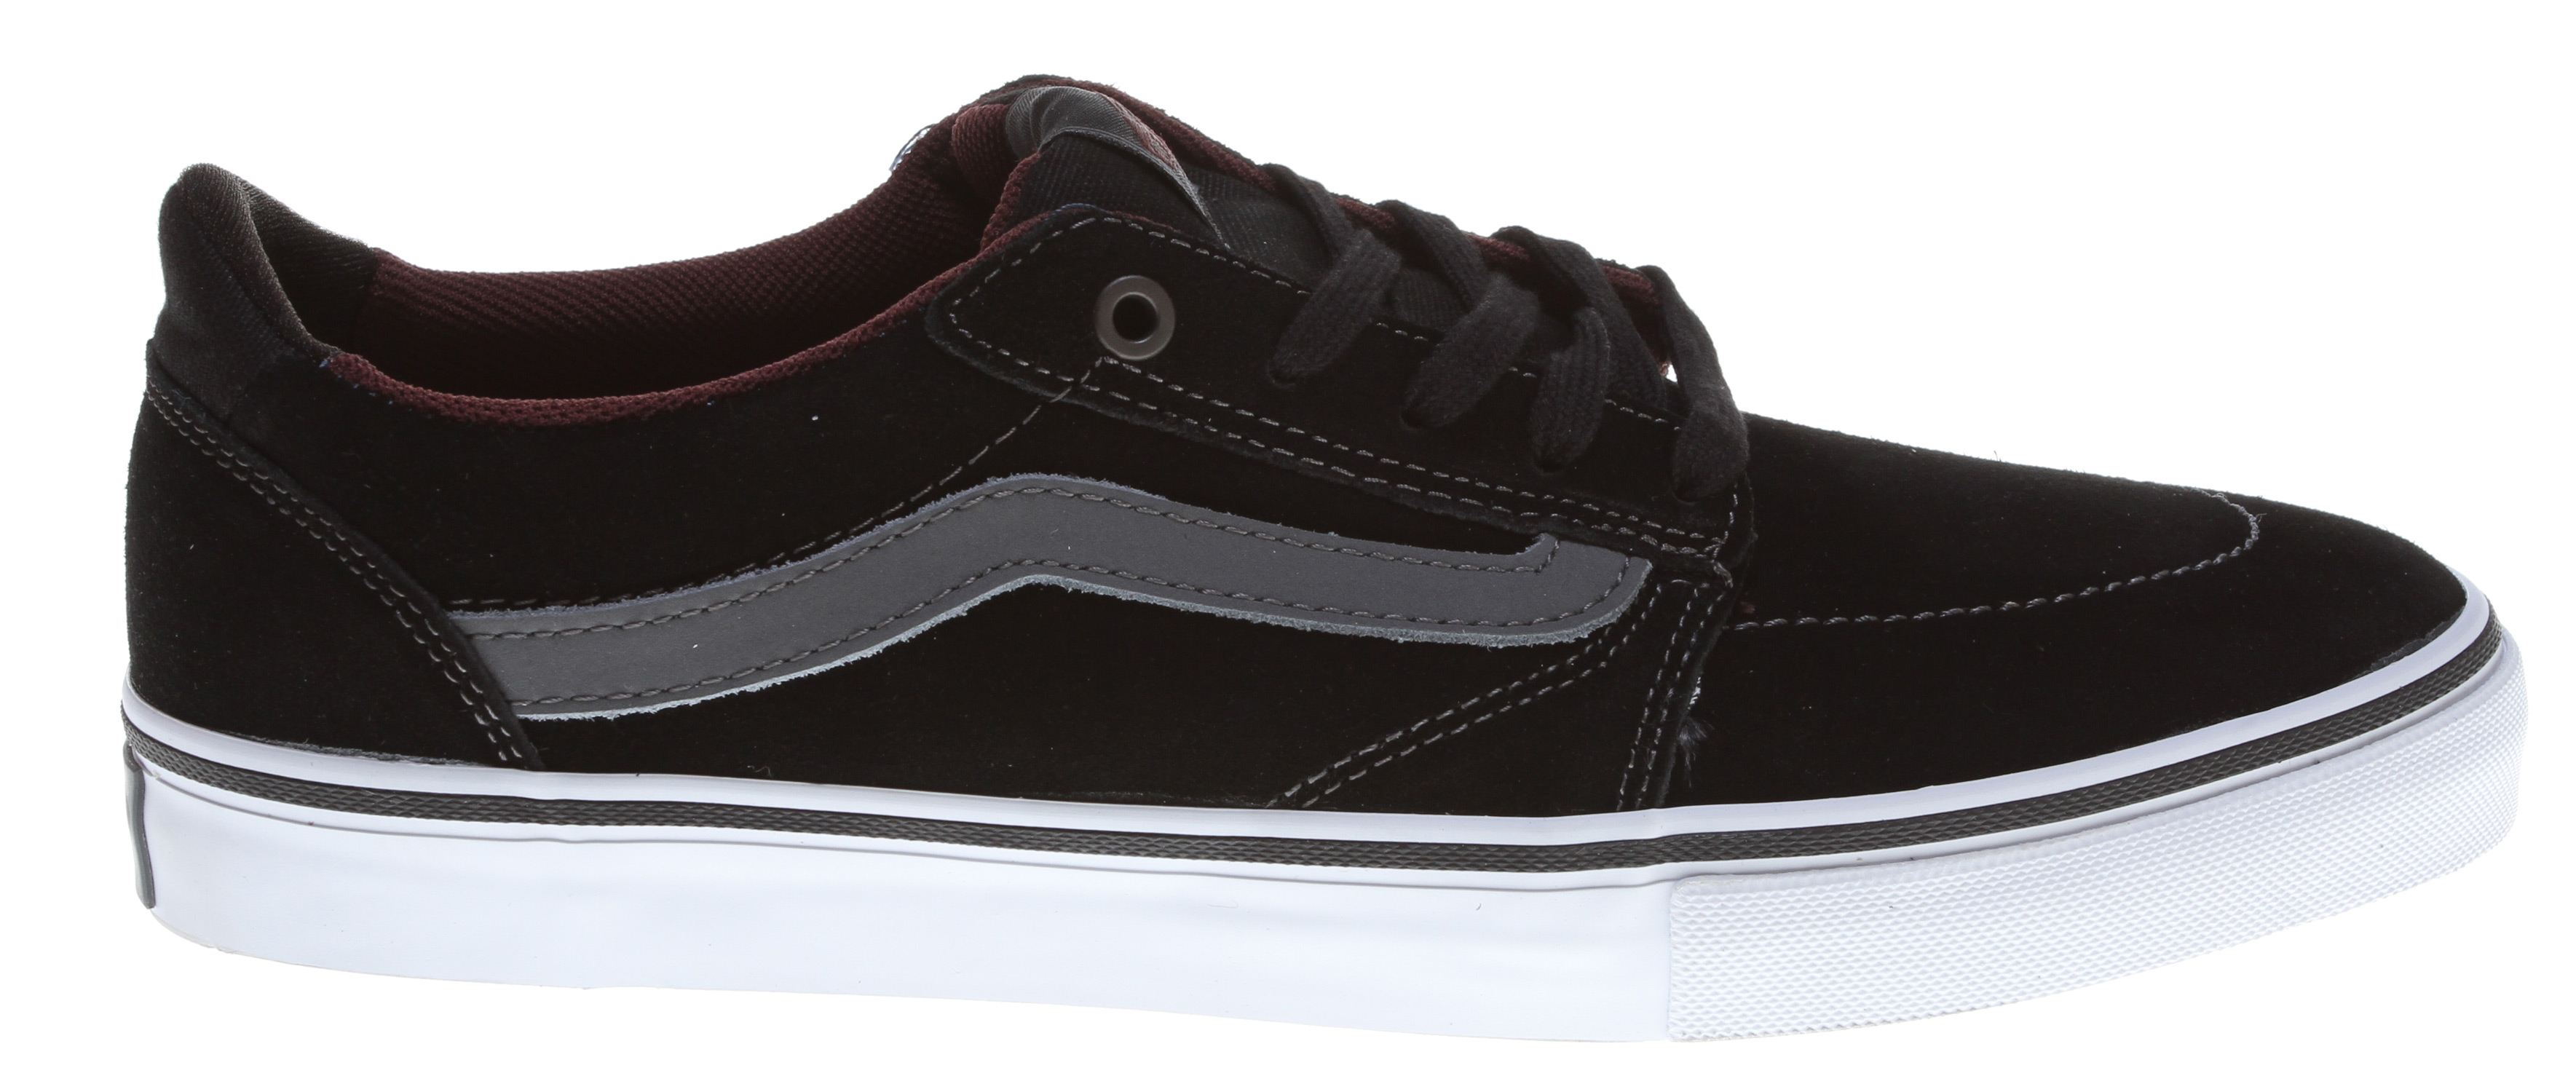 Skateboard Key Features of the Vans Lindero Skate Shoes: PRO SKATE Vulc Construction Co-Molded PU Cushioning Vans Original Waffle Gum Rubber Outsole - $45.95